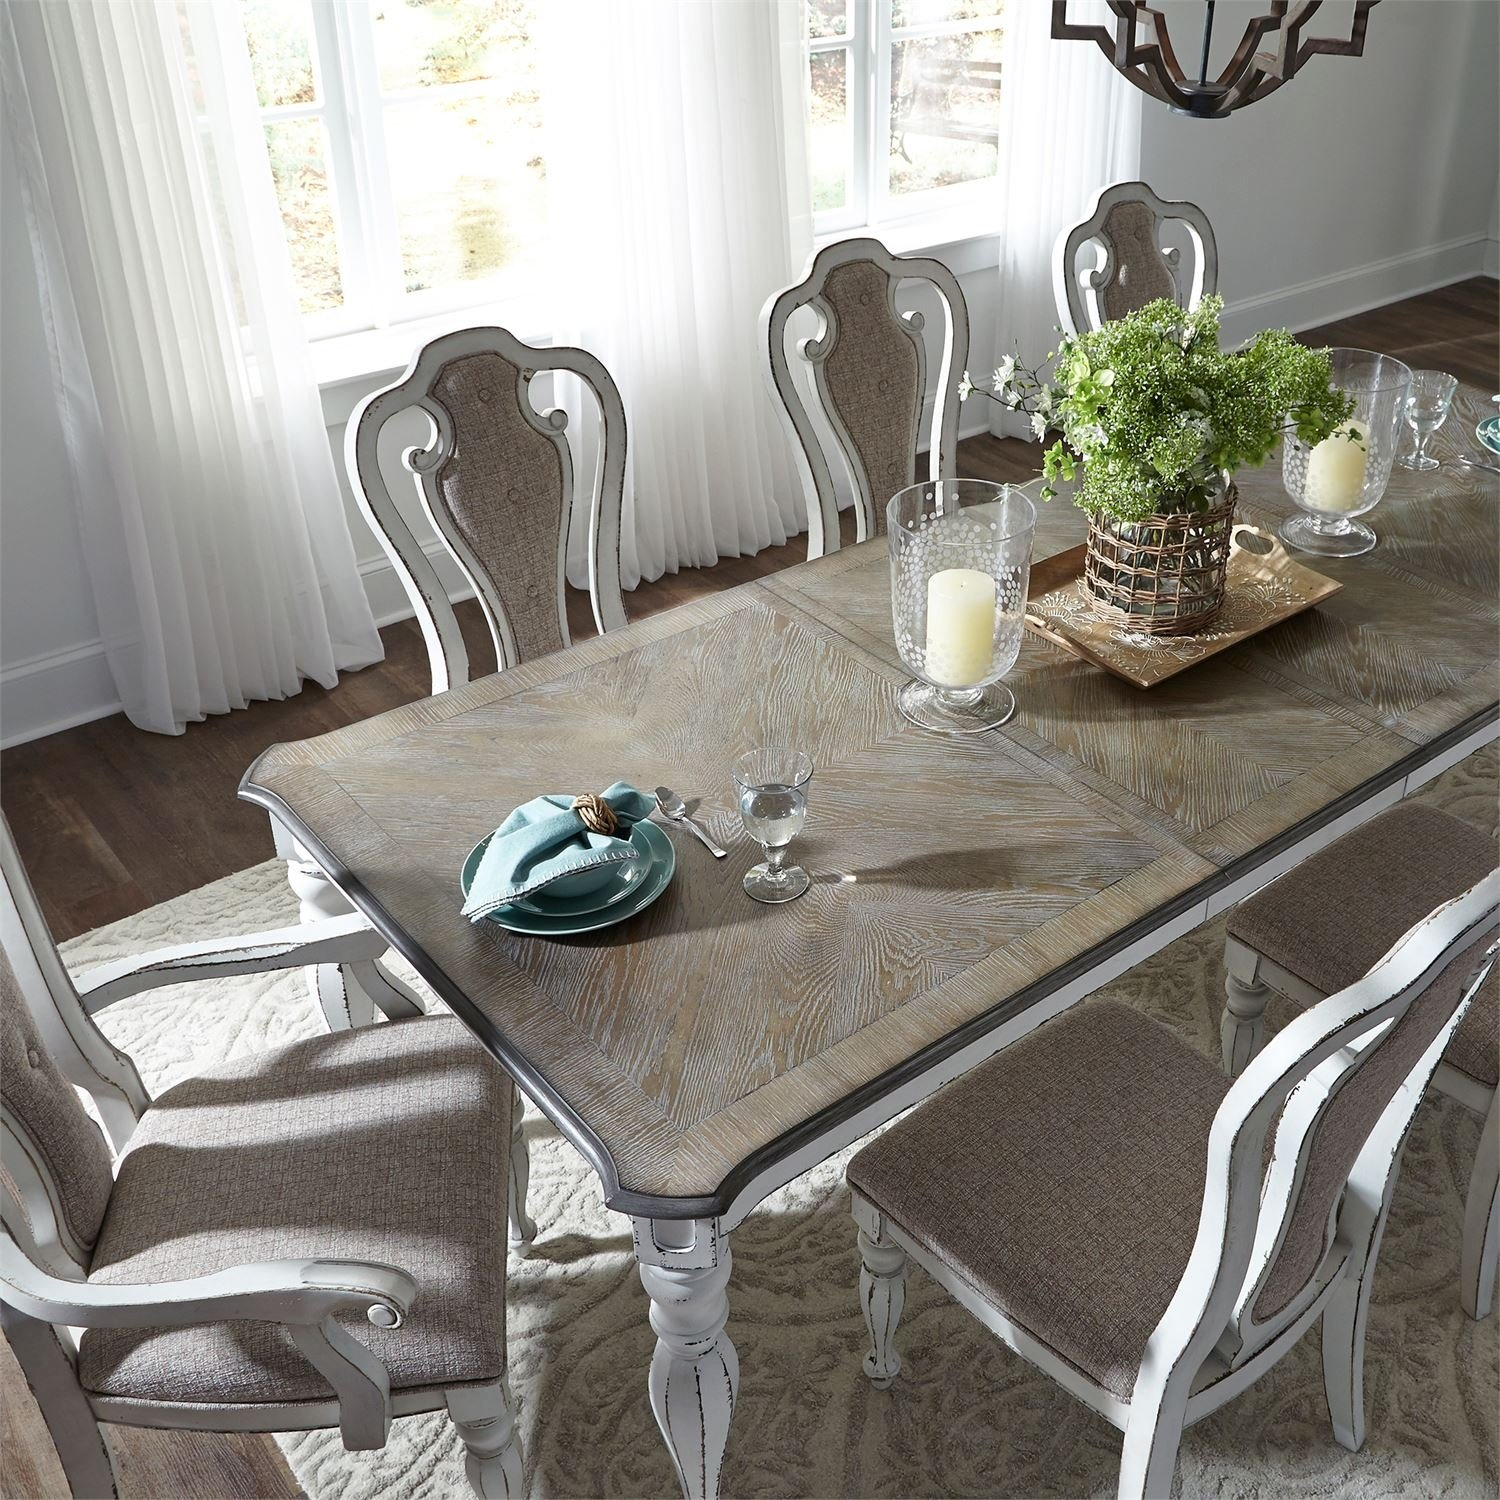 Dining room chairs upholstered high def photos